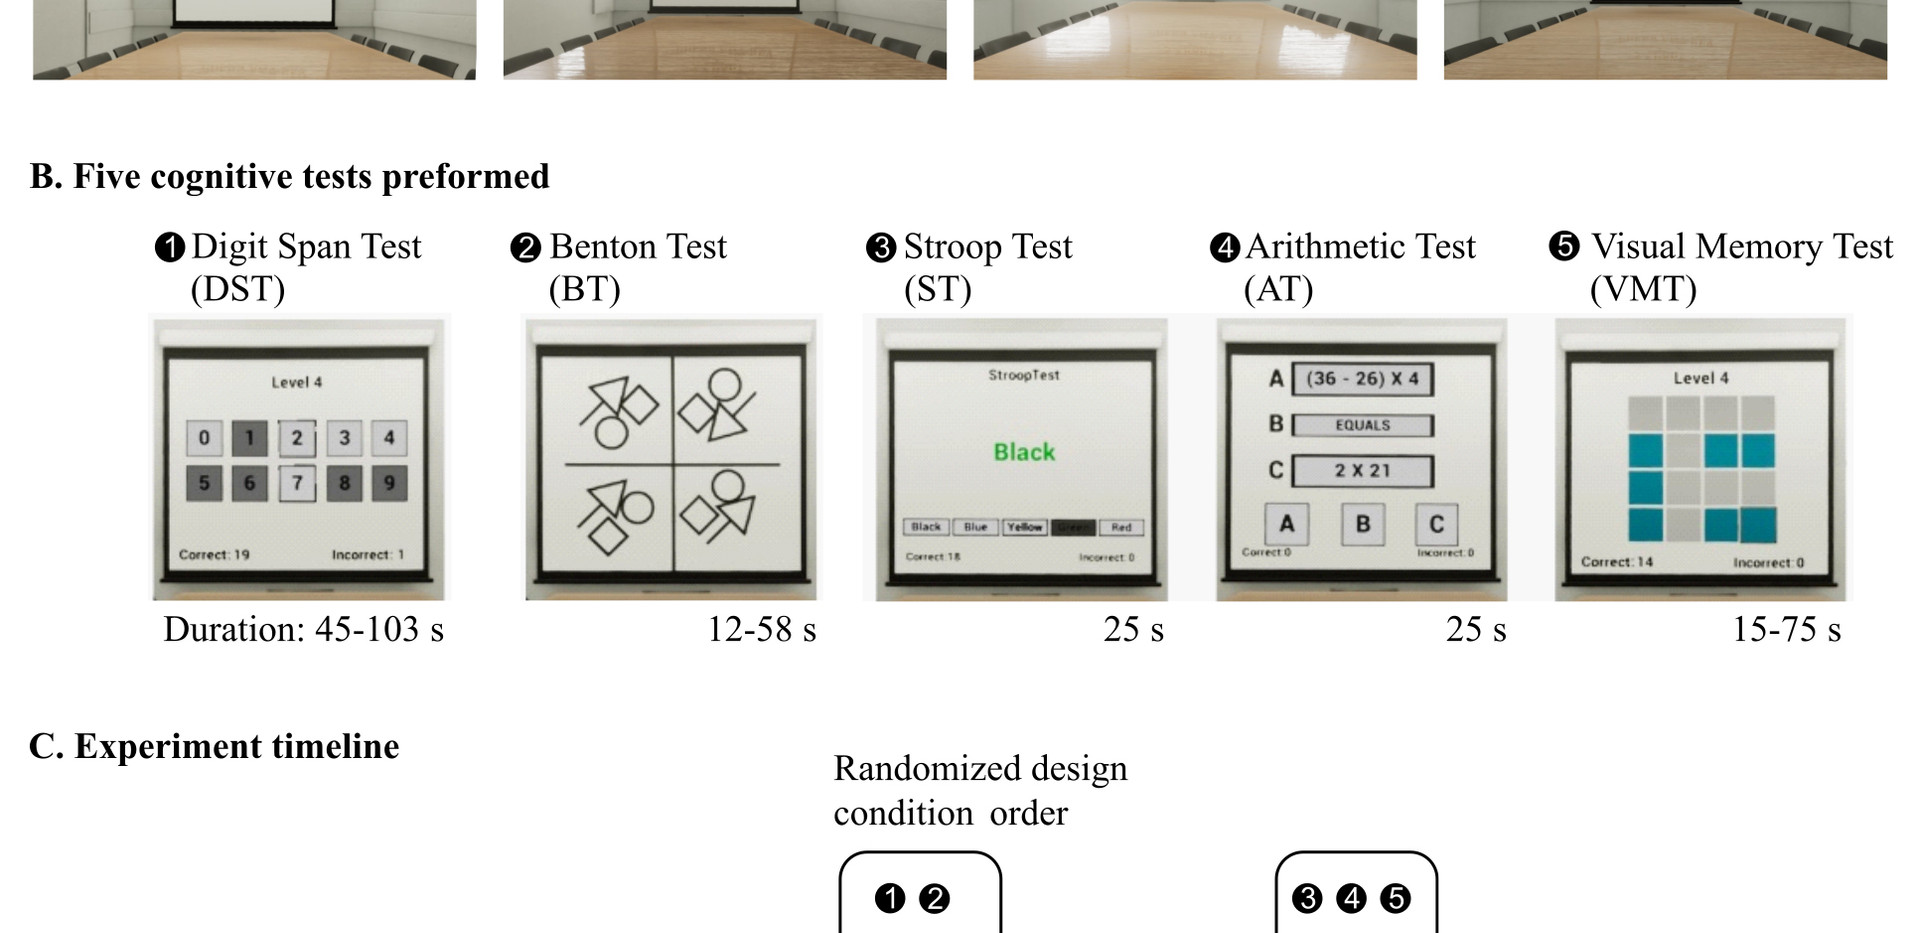 Overview of the study design. A. Four classroom design conditions were evaluated, and B. five cognitive tests were performed. C. The experiment's timeline included a familiarization period followed by exposure to each classroom environment in a random order.